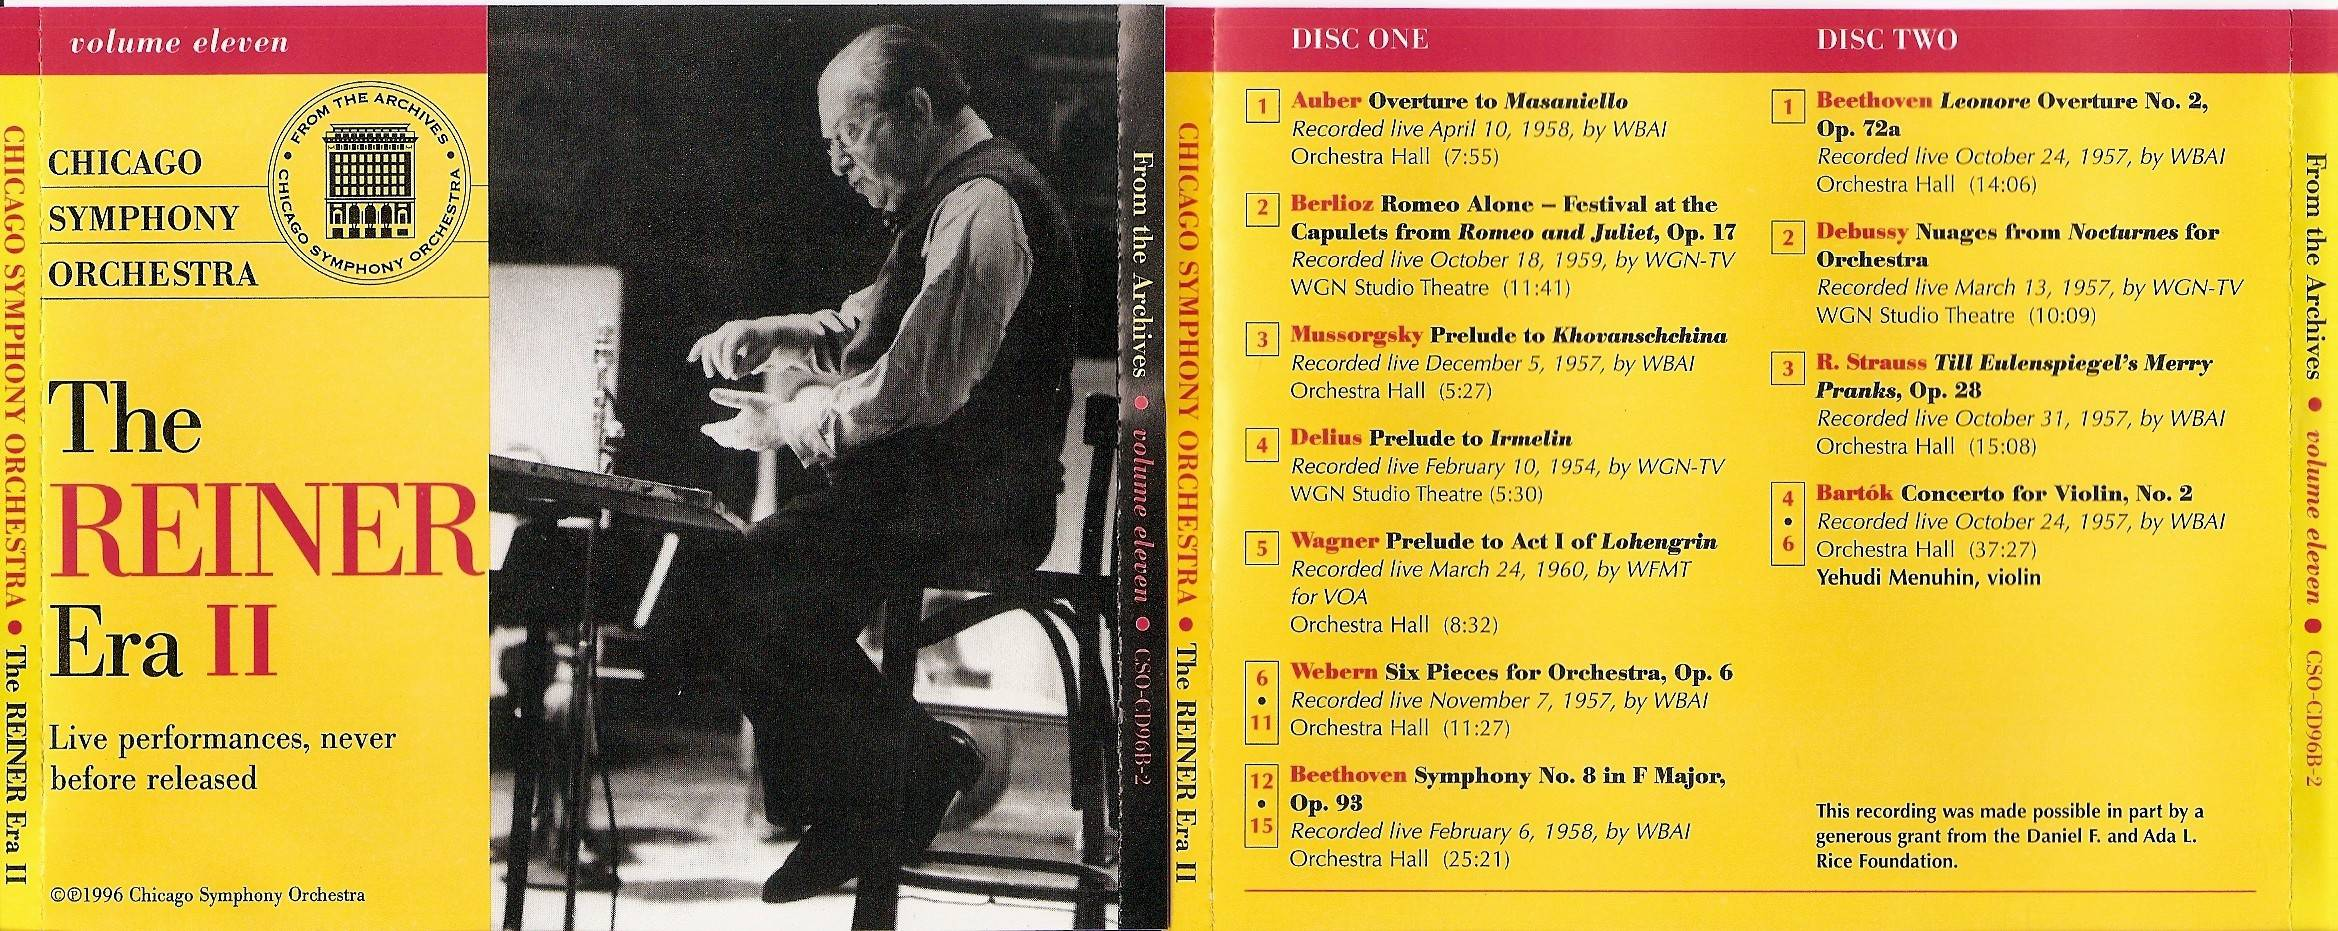 Chicago Symphony Orchestra - From The Archives, Vol.11: The Reiner Era II, 2-CD set (1996)